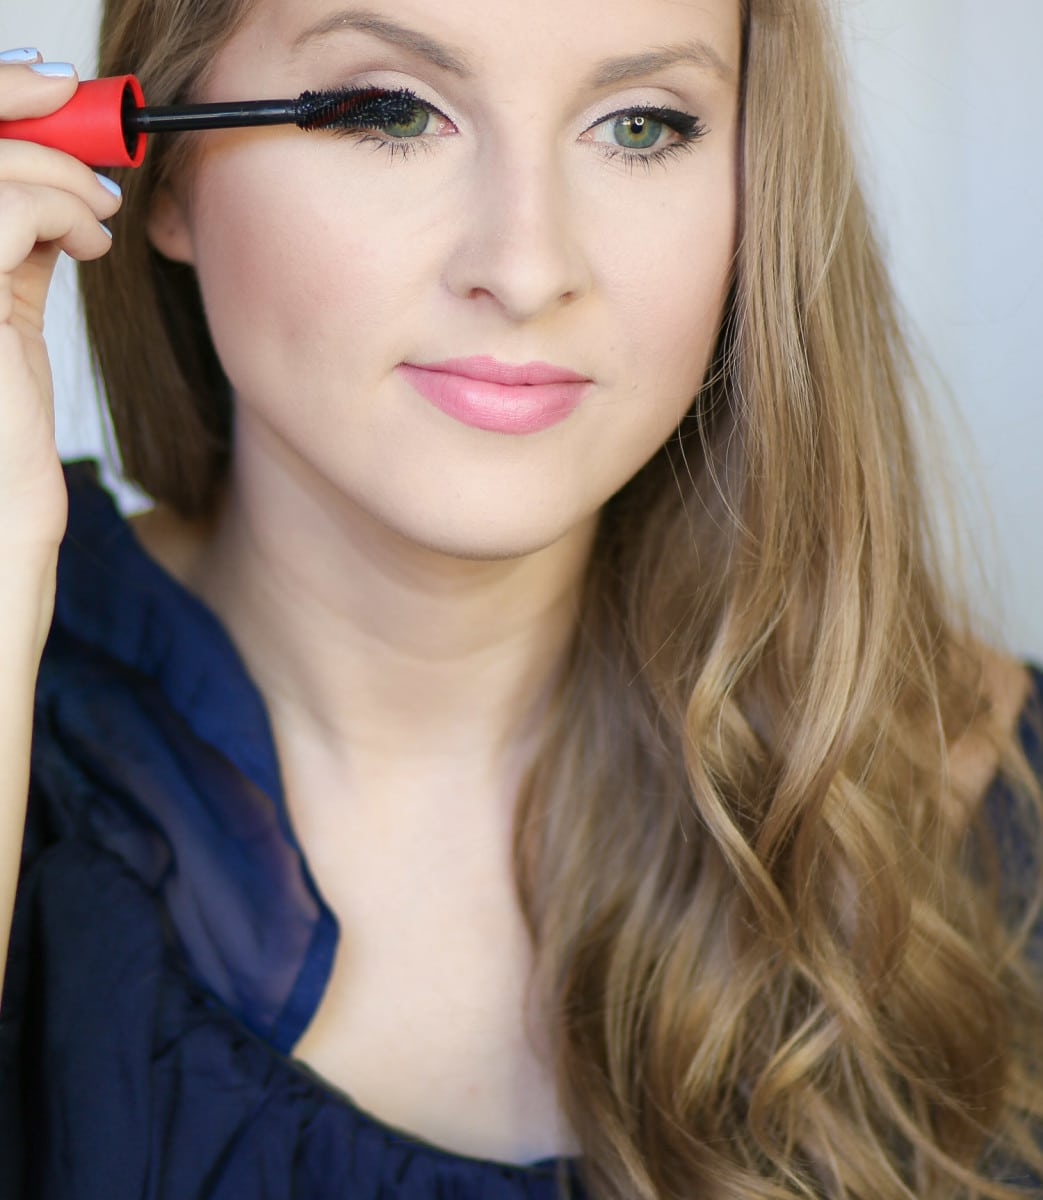 The Covergirl Plumpify Mascara is fantastic, and the price can't be beat. It volumizes and lengthens your lashes without getting too clumpy!